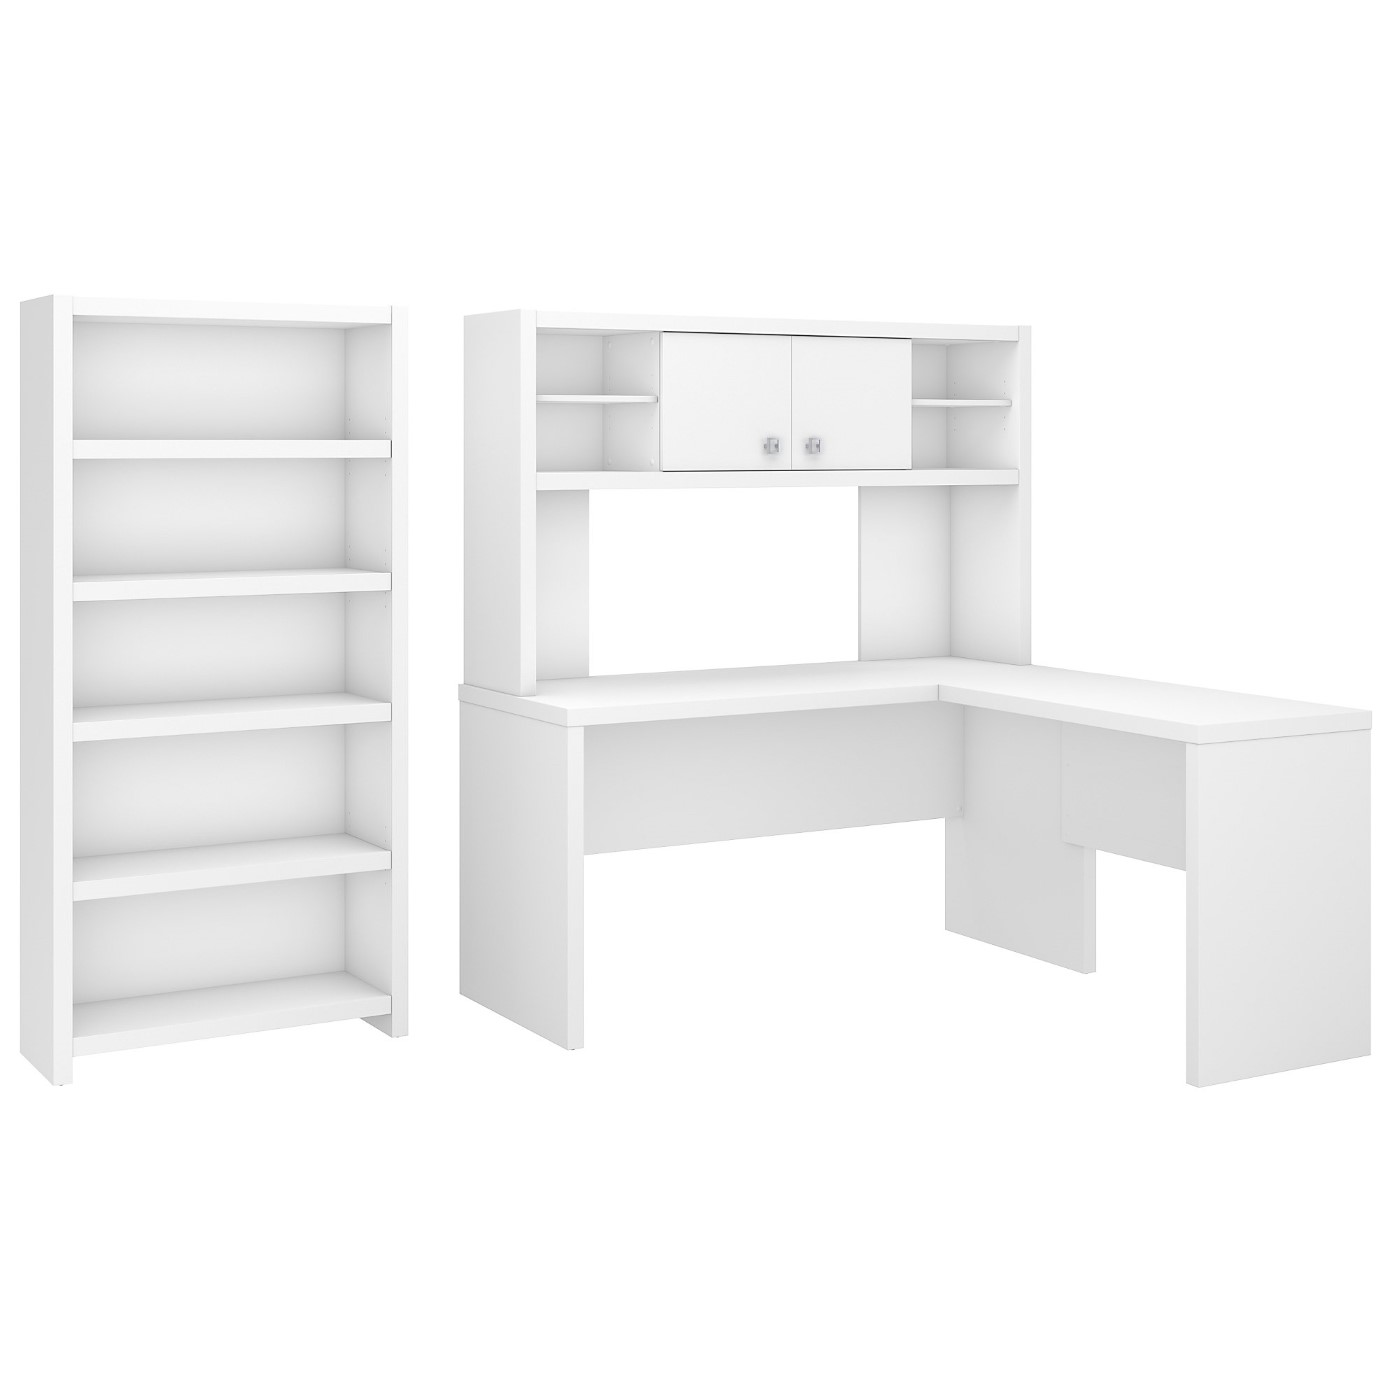 OFFICE BY KATHY IRELAND® ECHO L SHAPED DESK WITH HUTCH AND 5 SHELF BOOKCASE. FREE SHIPPING SALE DEDUCT 10% MORE ENTER '10percent' IN COUPON CODE BOX WHILE CHECKING OUT.